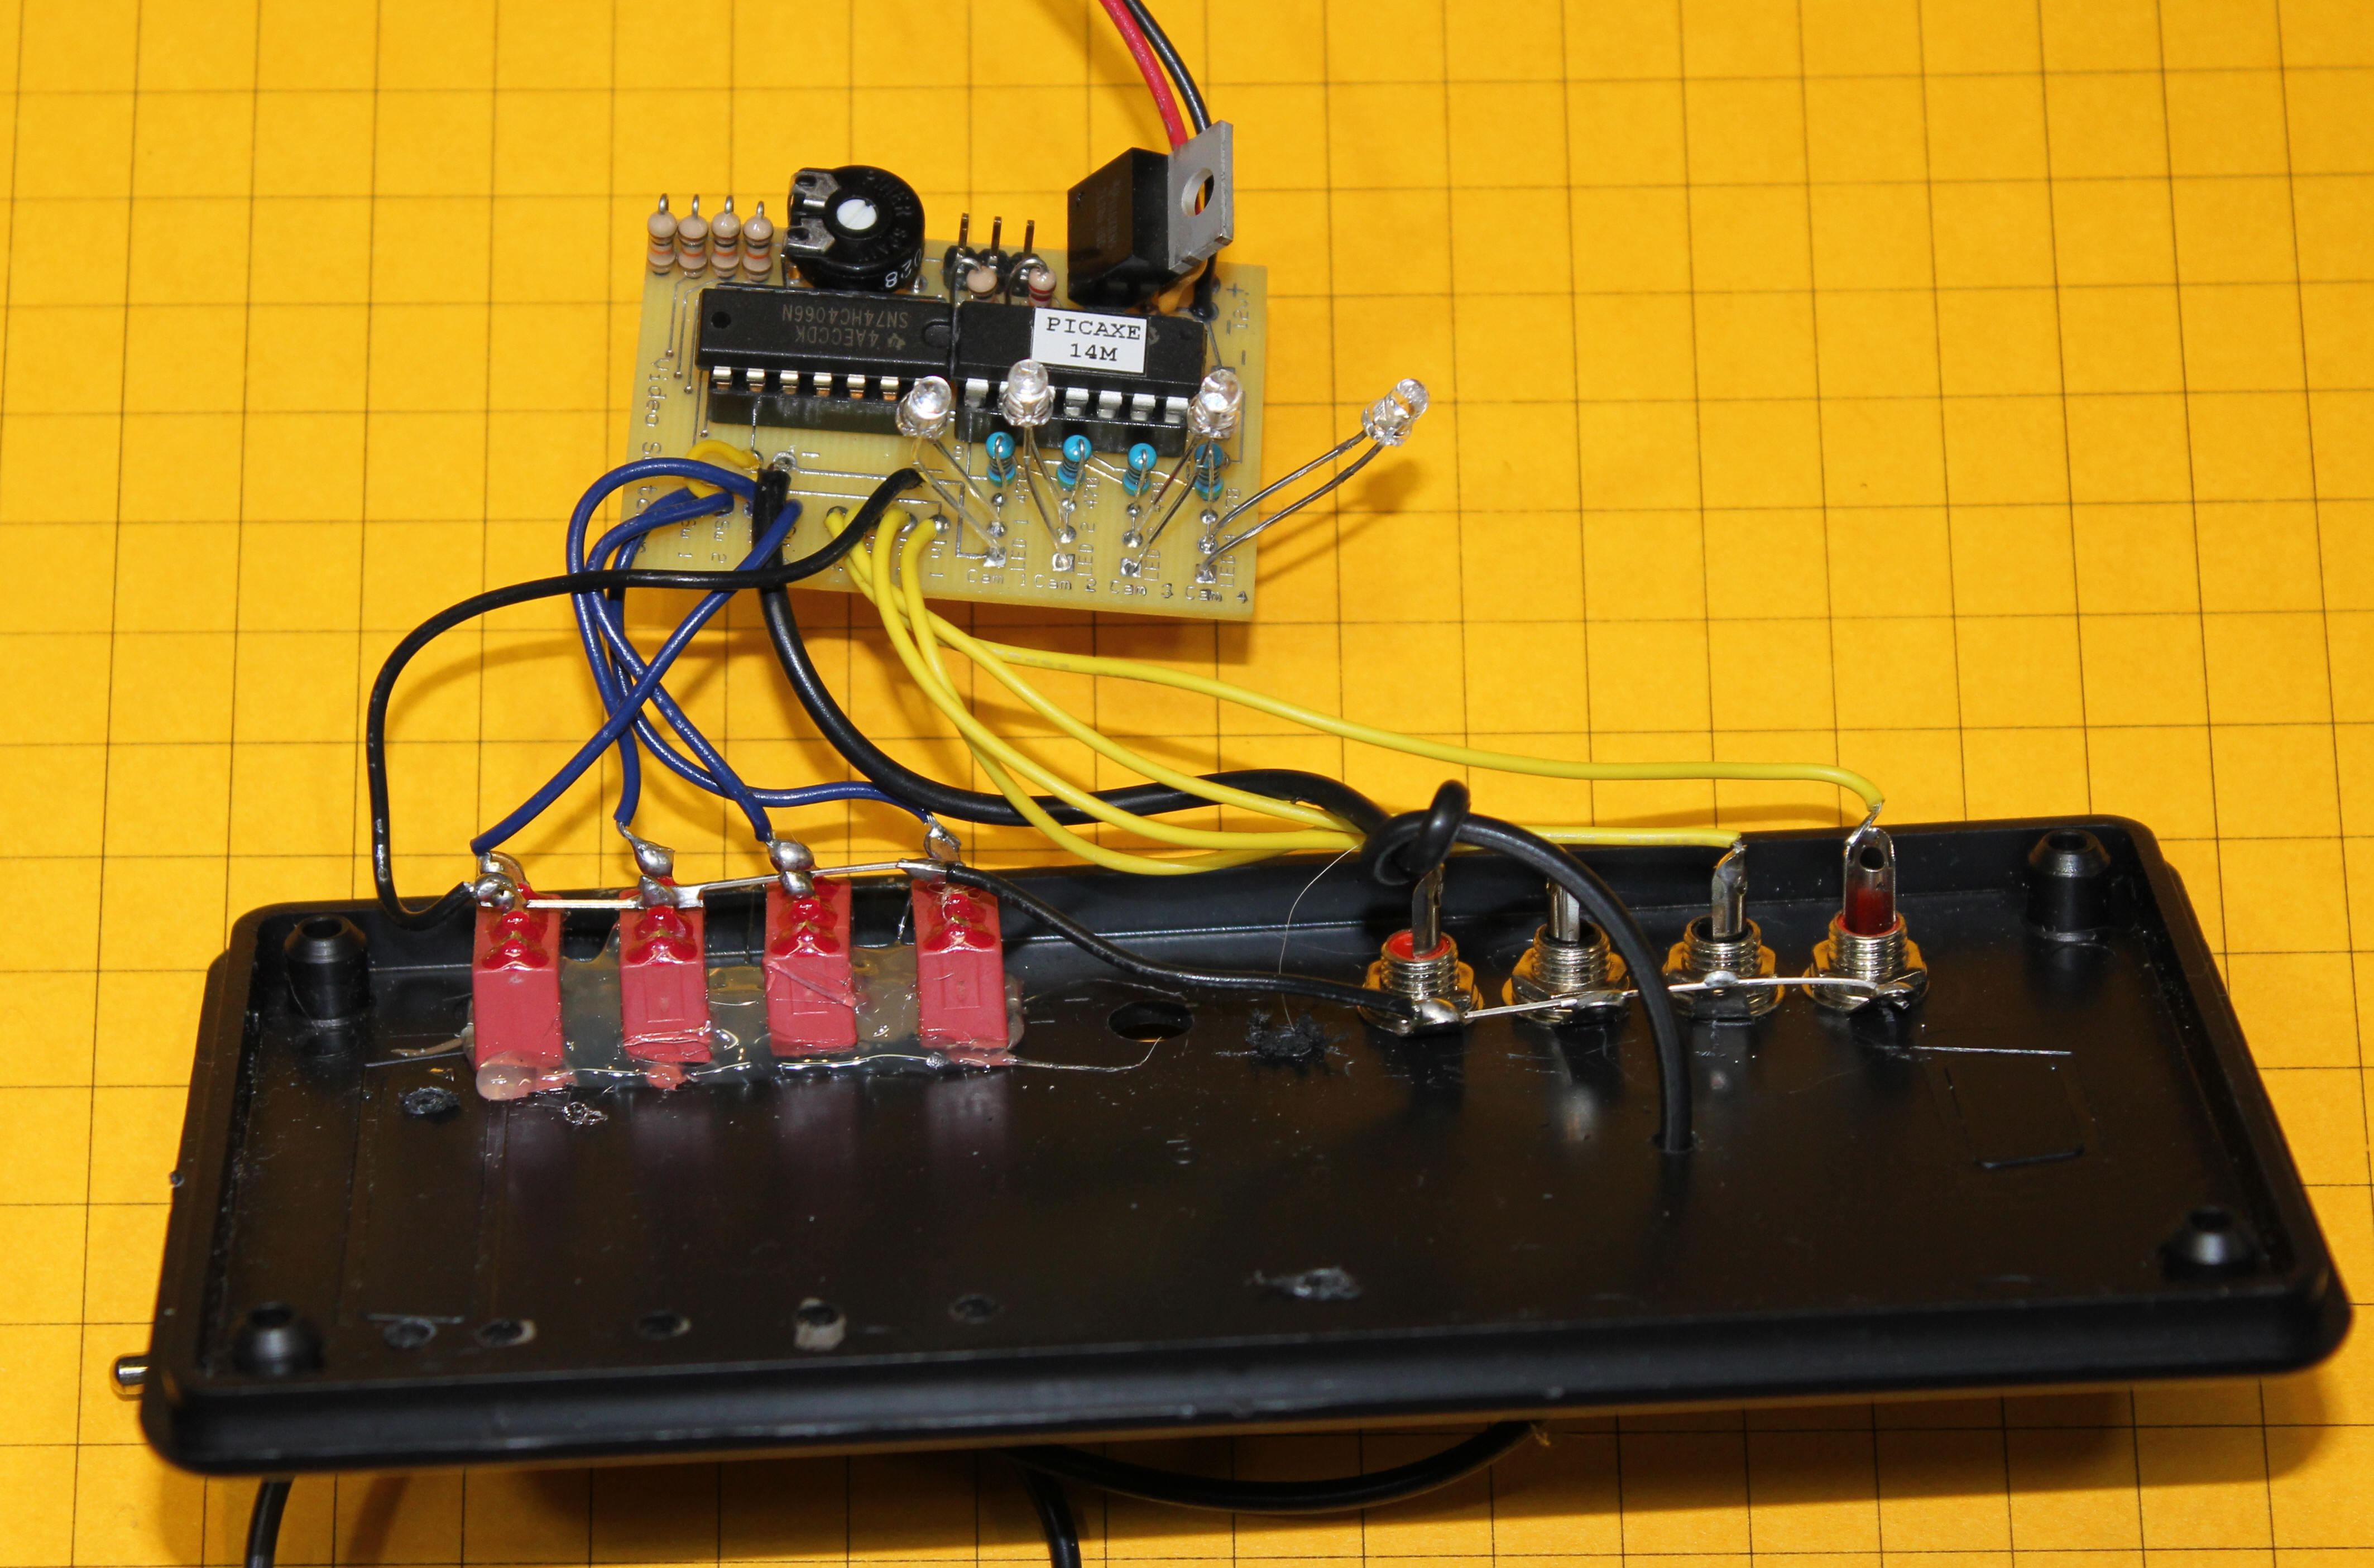 Webcam To S Video Wiring Diagram 32 Images Board Camera Web Cam Project Pic Inside Usb At